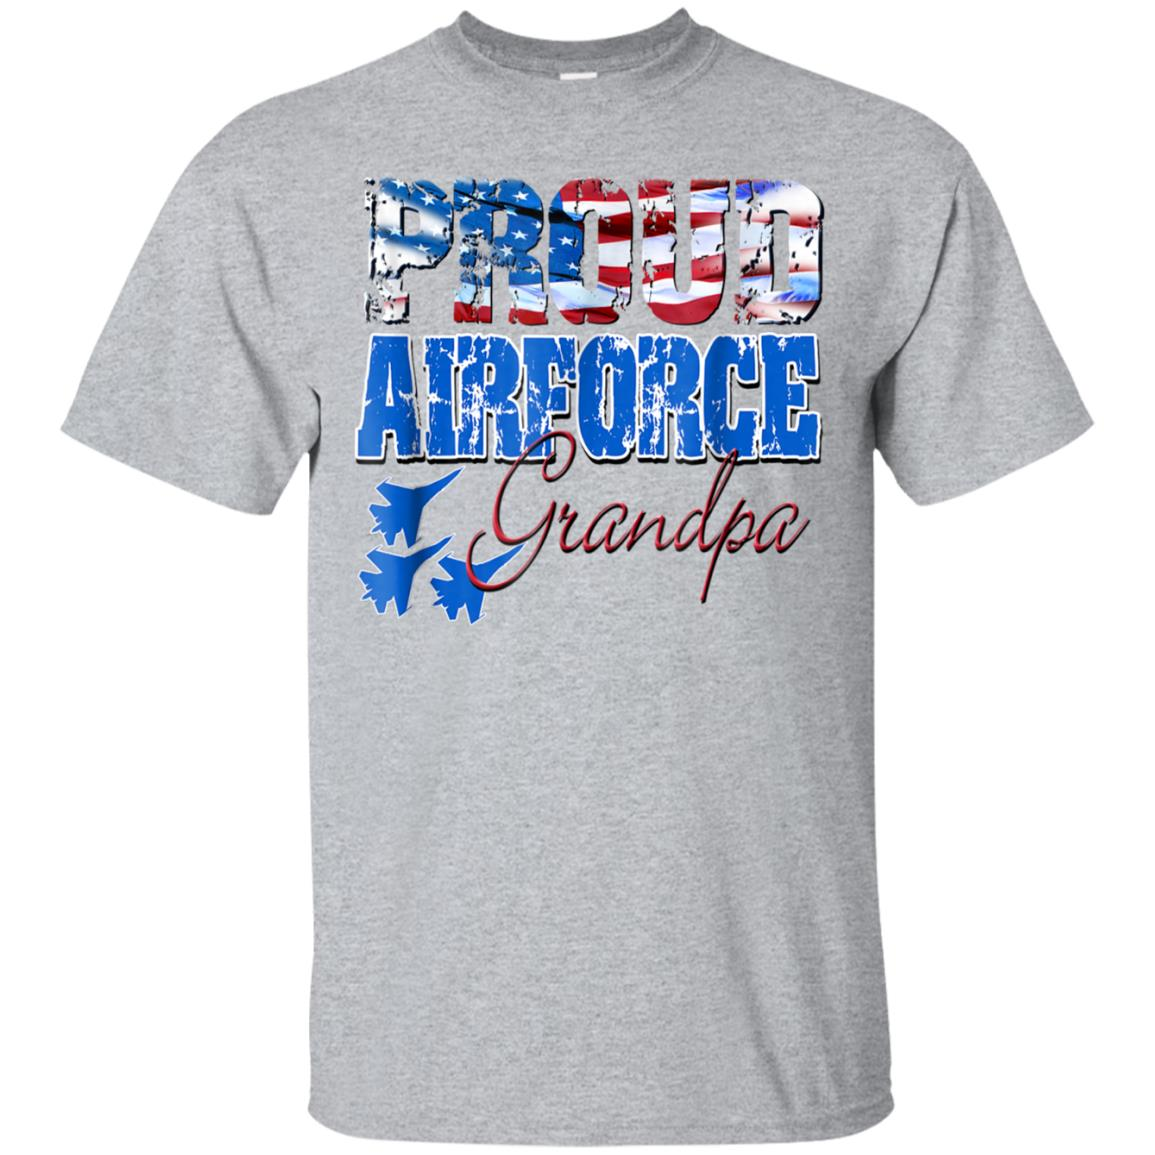 Proud Air Force Grandpa Shirt USA Flag Men 99promocode